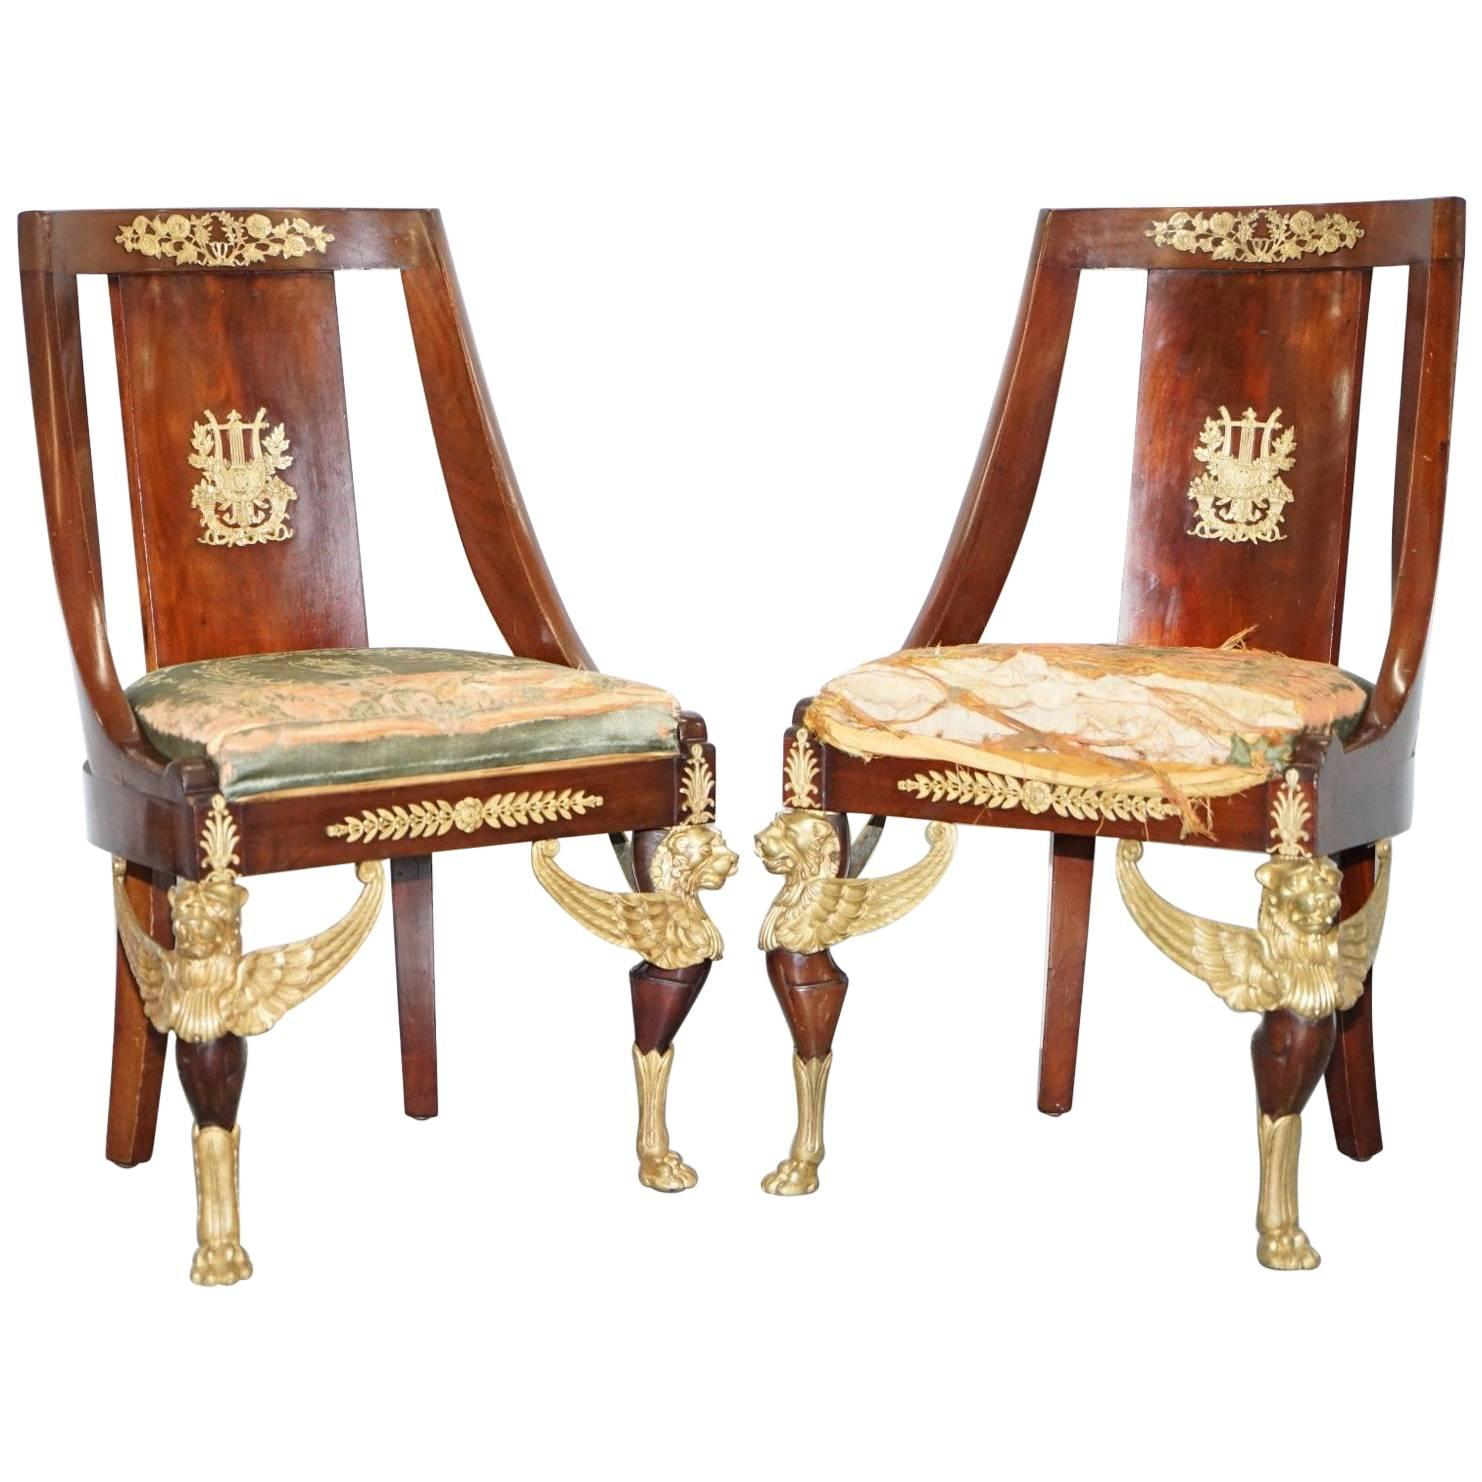 Old Fashioned Furniture For Sale: 1stdibs: Antiques, Vintage And Mid-Century Modern